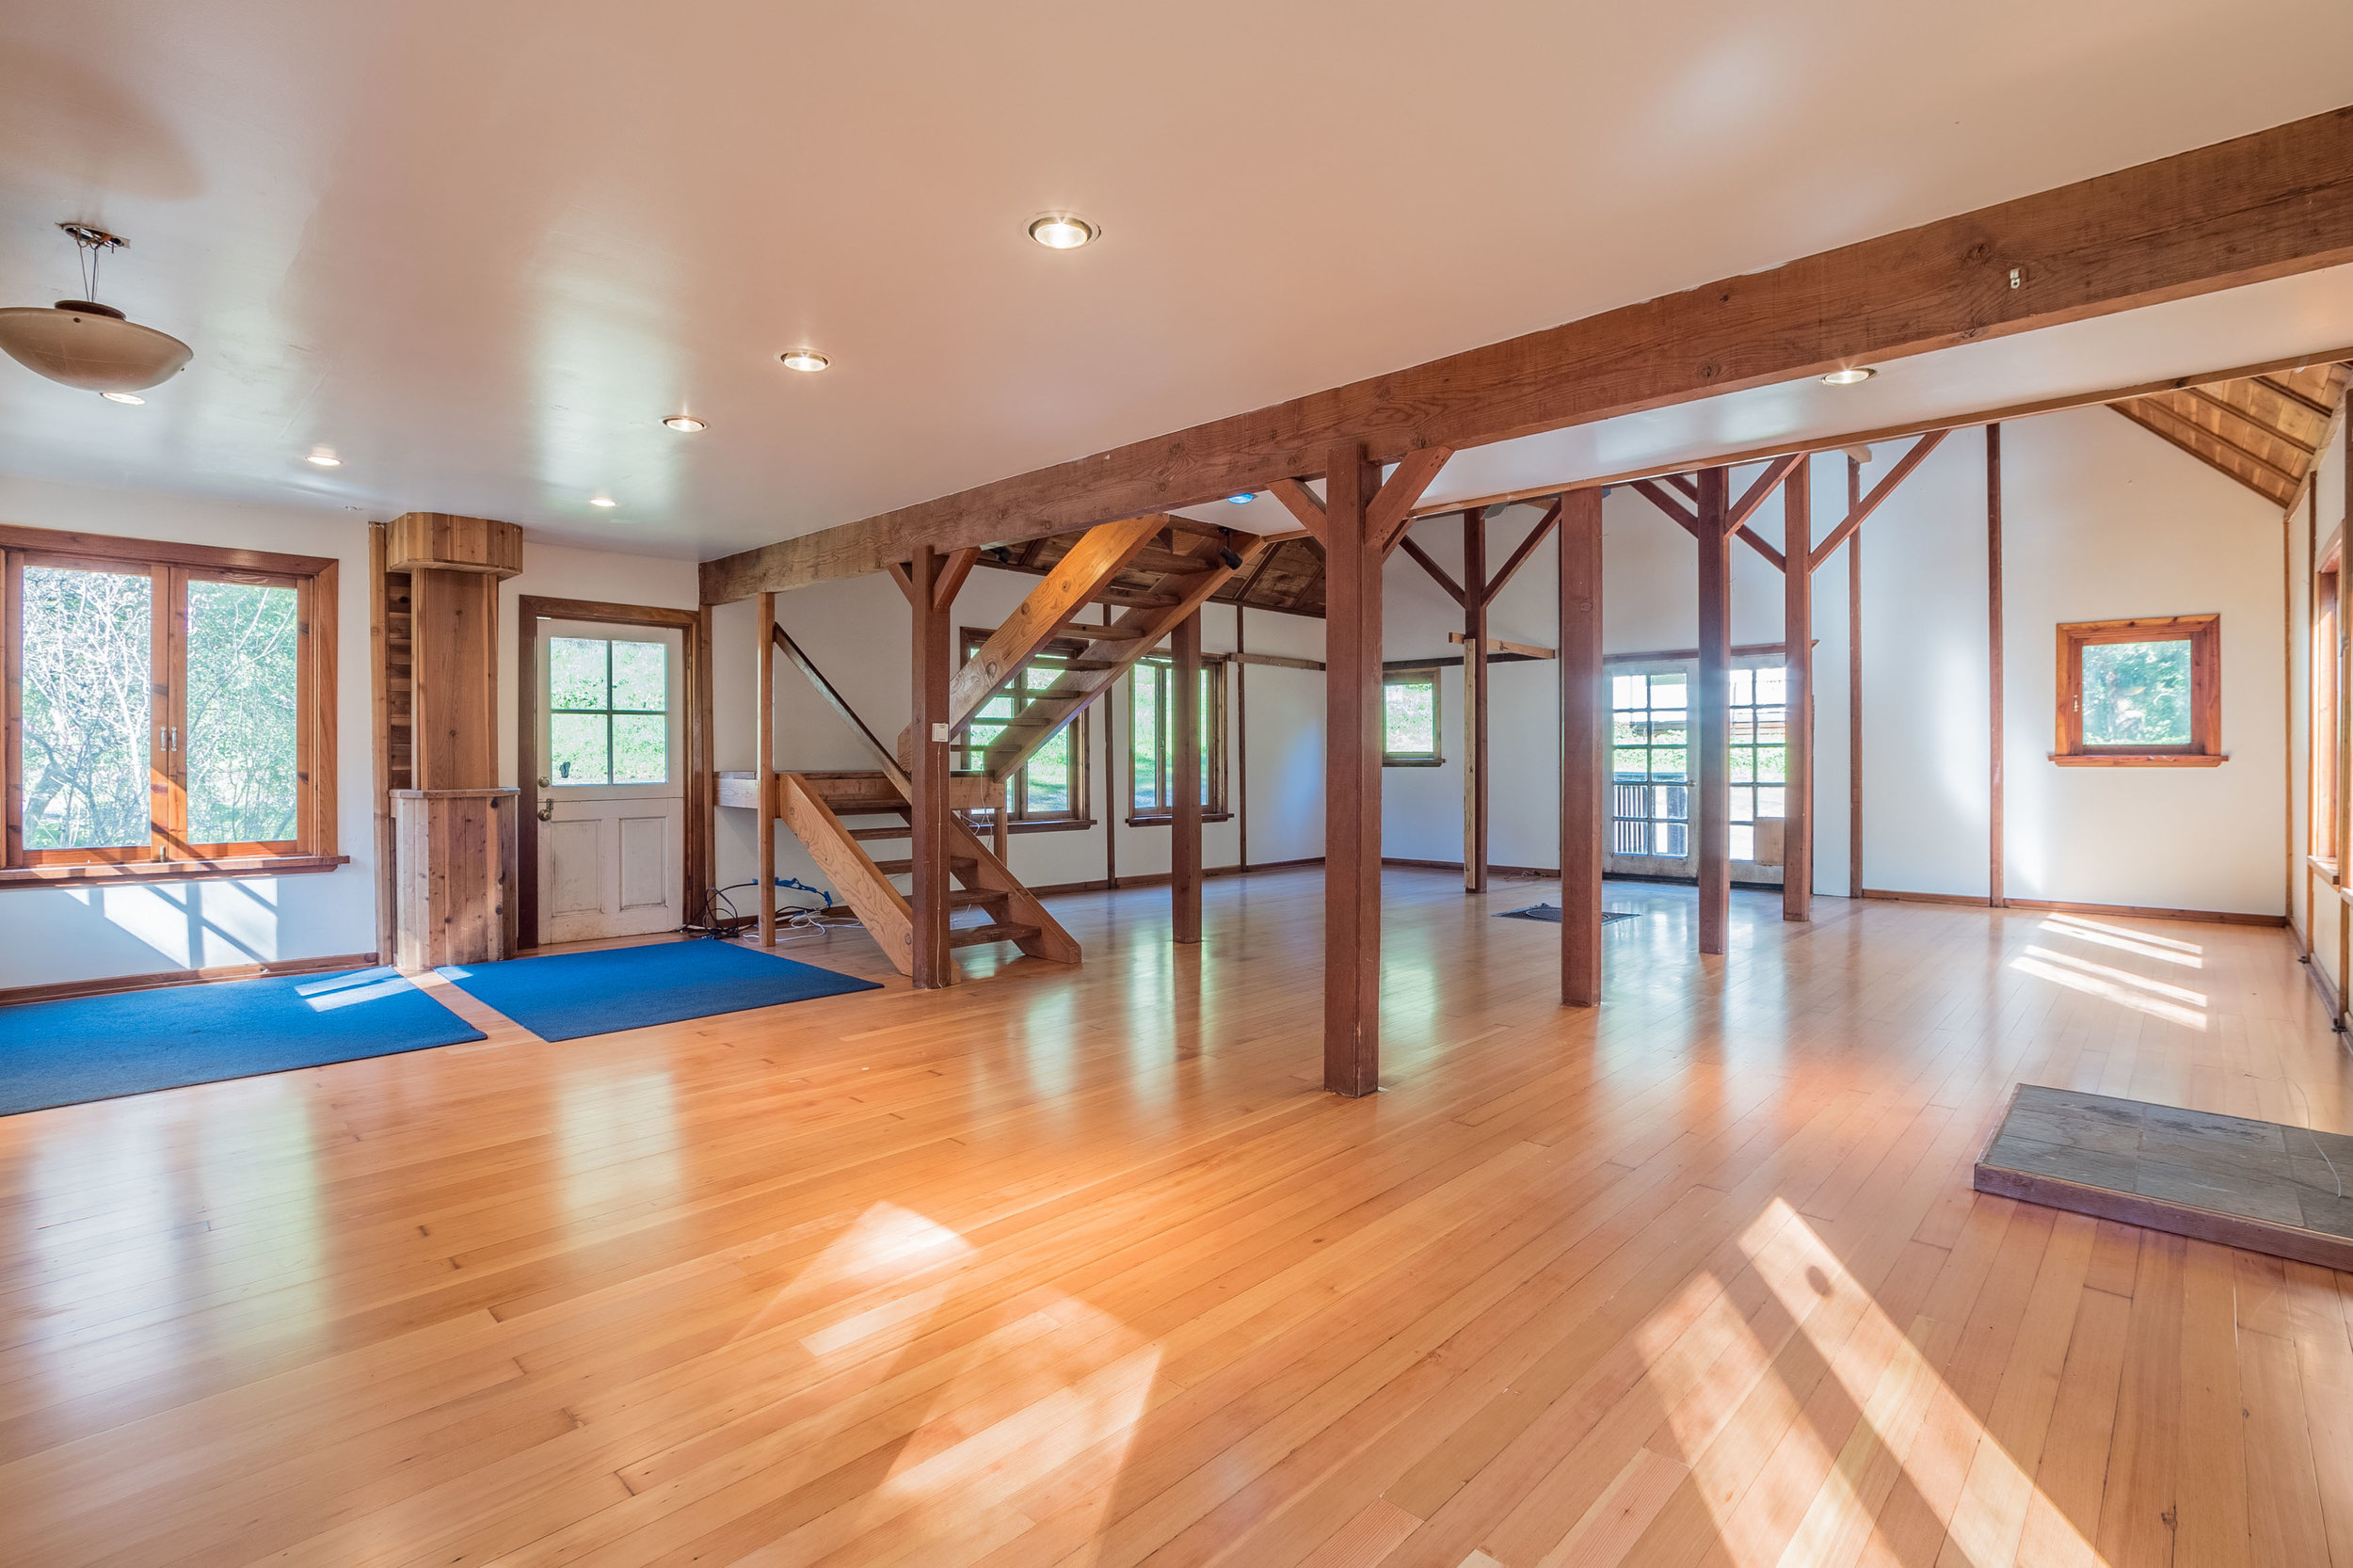 Finished Tri-Level Barn with Vaulted Ceilings and Loft